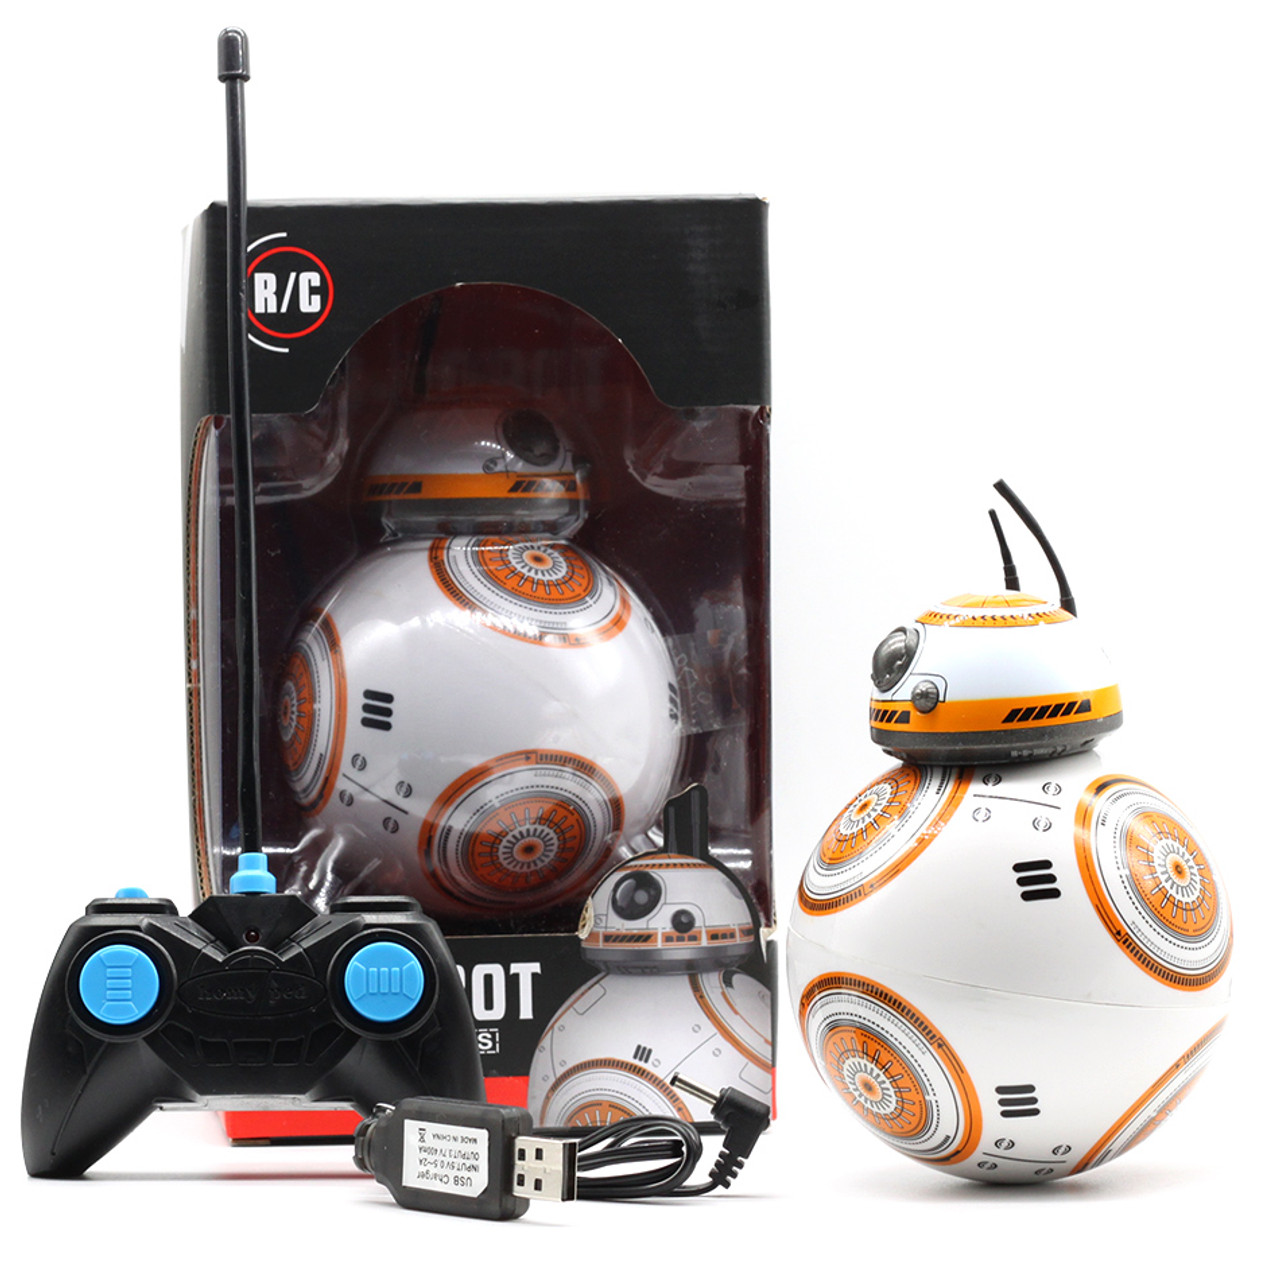 Deco Chambre Star Wars star wars led-usb-light bb-8 9 cm gadgets décoration de